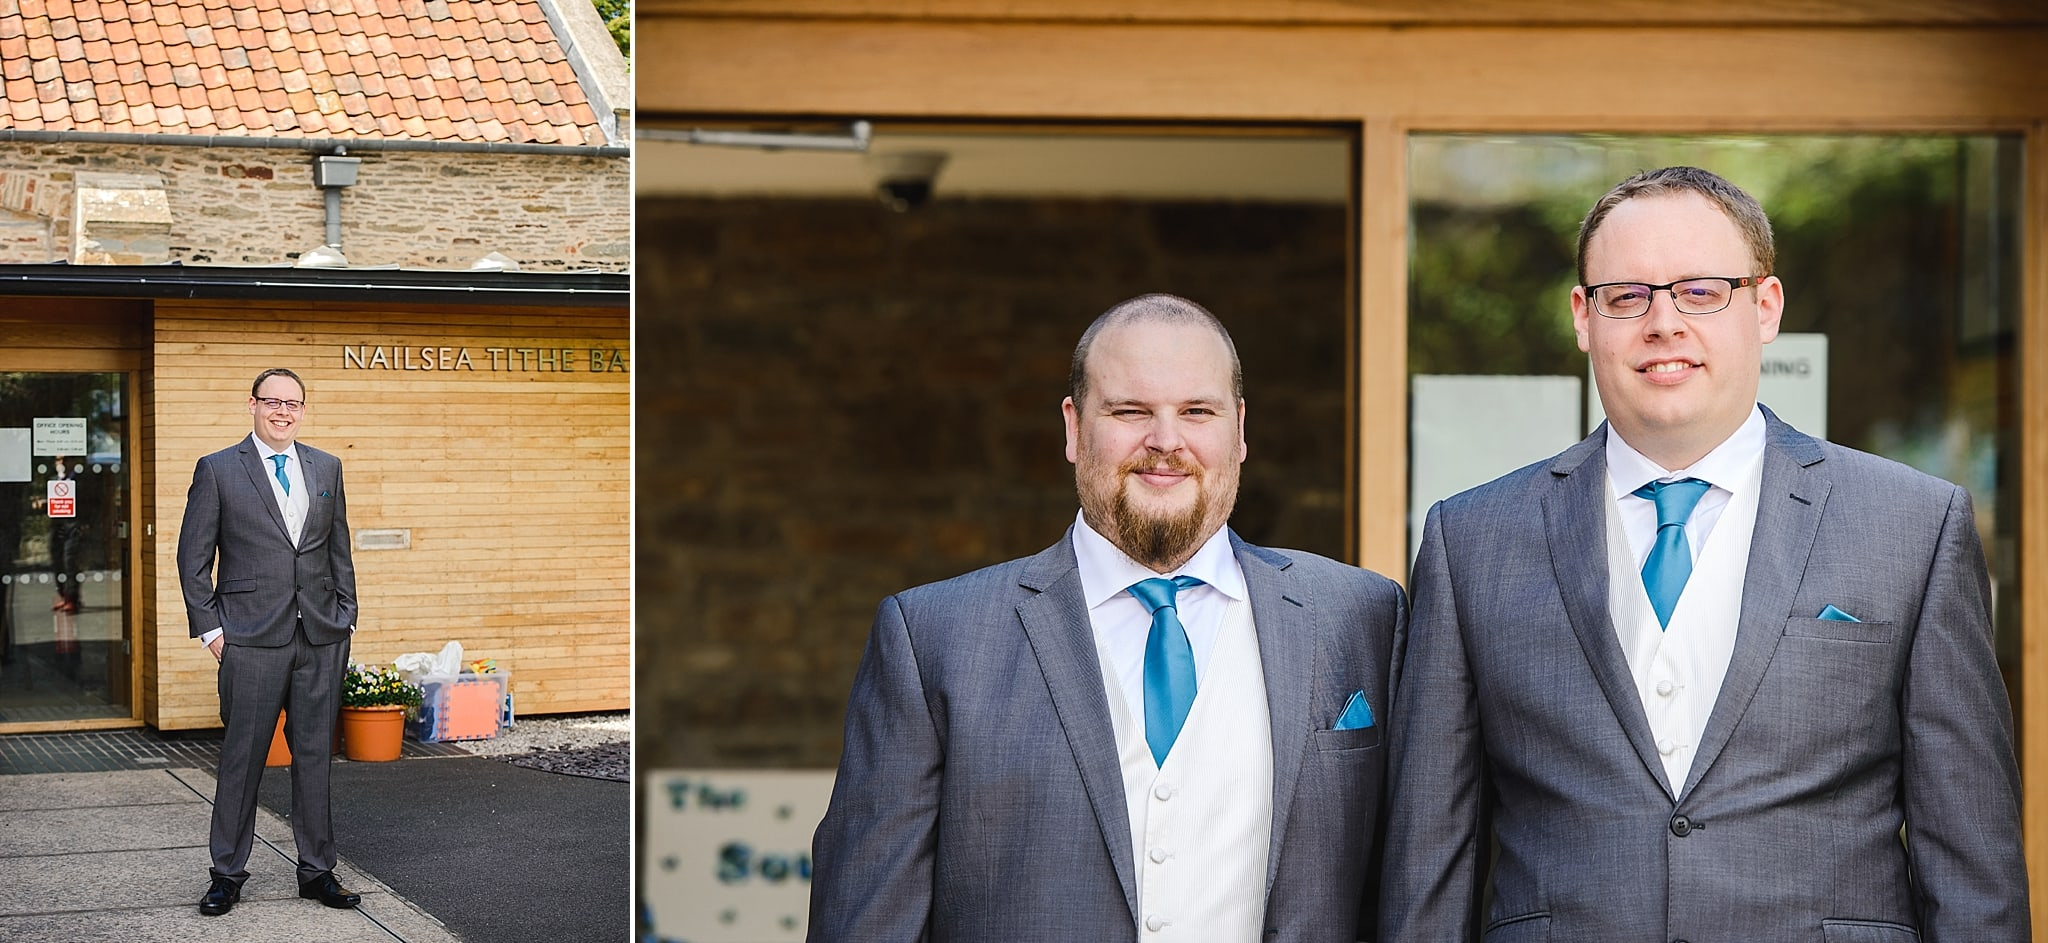 The groom with his best man stood outside Nailsea Tithe Barn